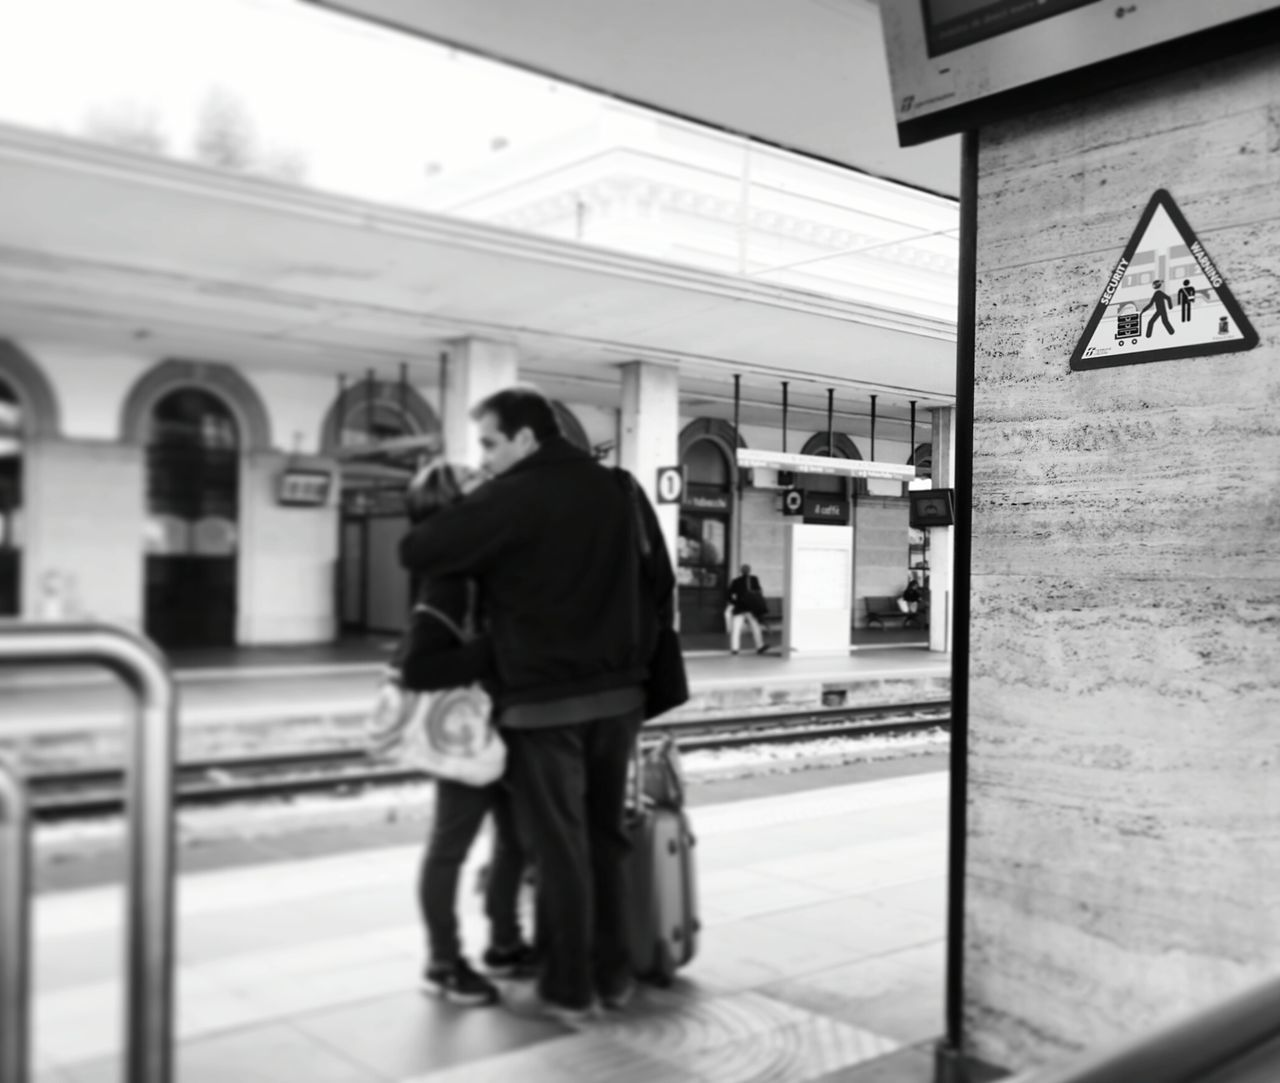 -PEOPLE- 'security warning' Black And White Collection  EyeEm Best Shots - Black + White Blackandwhitephotography Black&white Blackandwhite Photography Black And White Blackandwhite Biancoenero The Human Condition Peoplephotography People Untold Stories Black And White Photography Black & White People Of Europe People Photography Streetphotography People Of EyeEm Streetphoto Street Photography Streetphotographer Street Photo Thedayafterparis